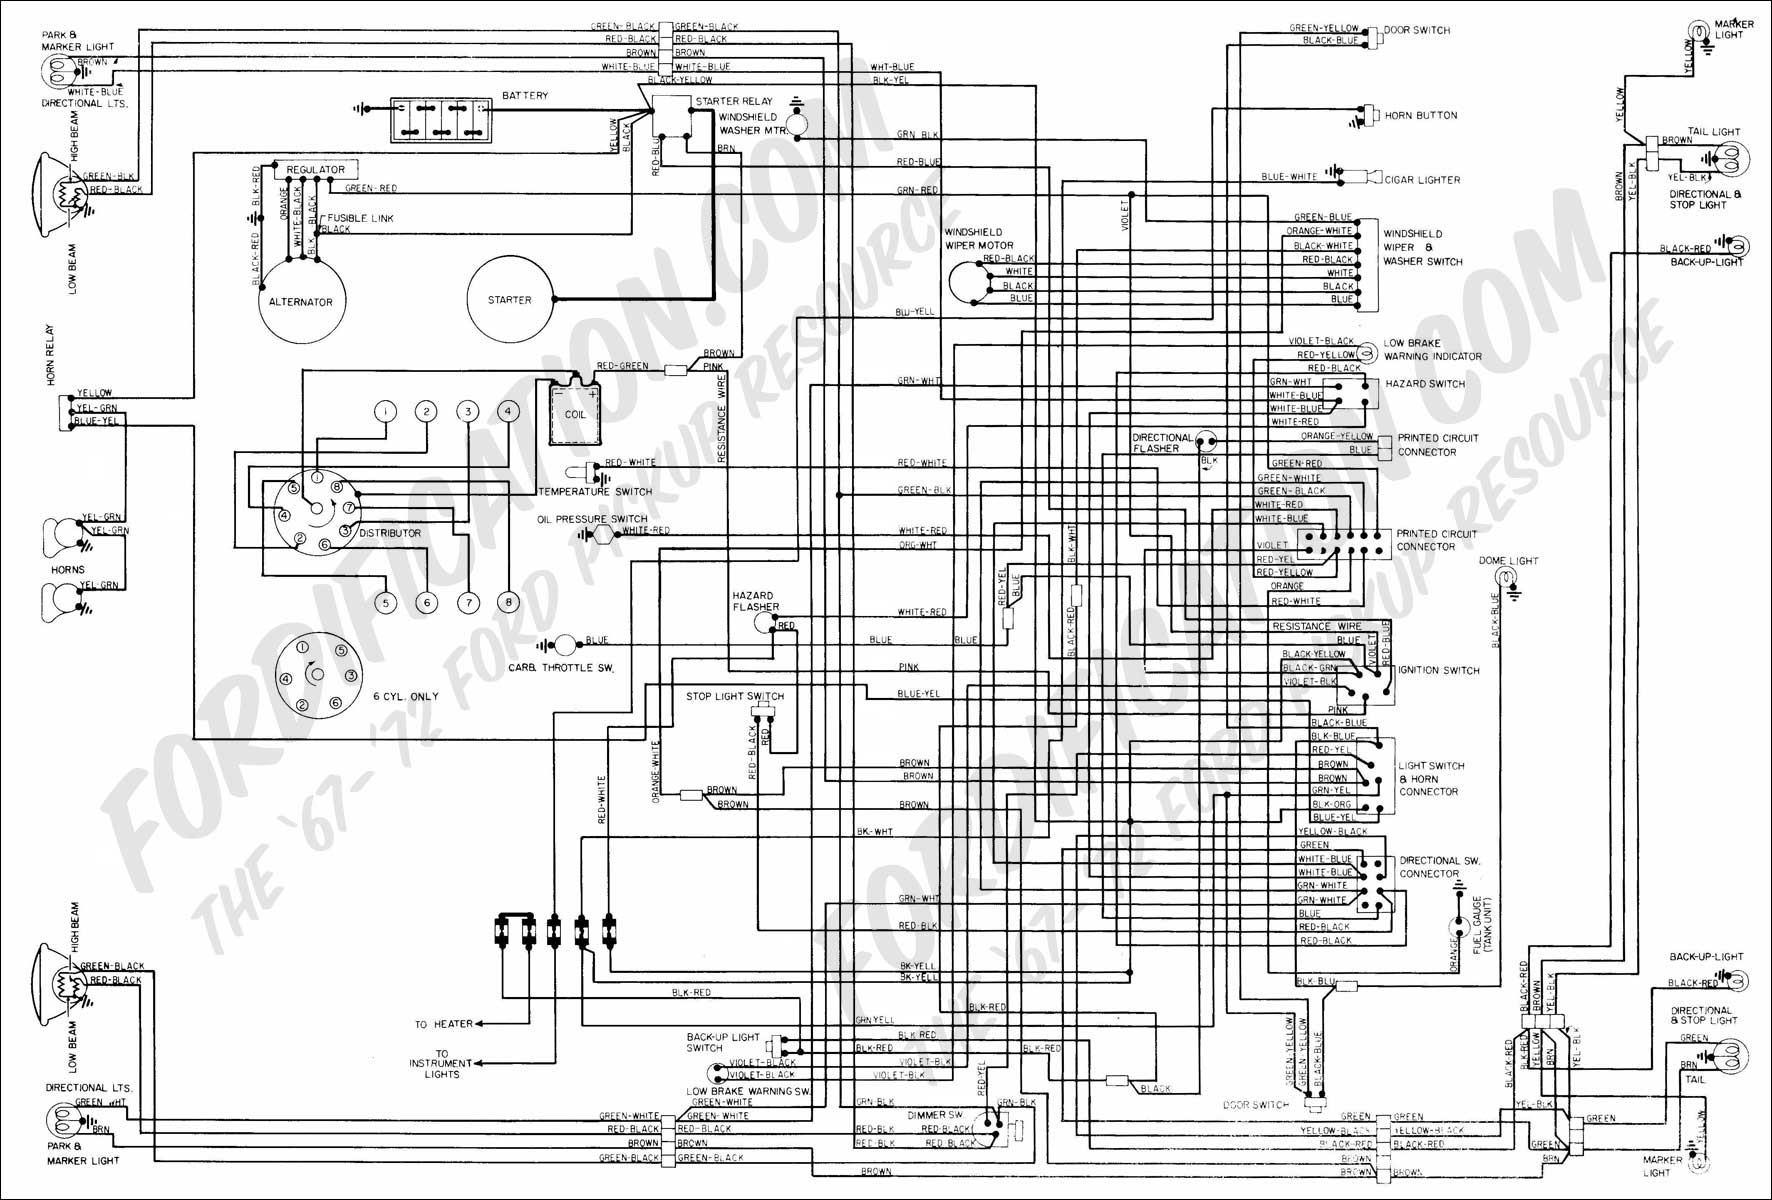 wiring diagram 72_quick 2002 ford f250 wiring diagram efcaviation com ford f250 wiring diagram at nearapp.co